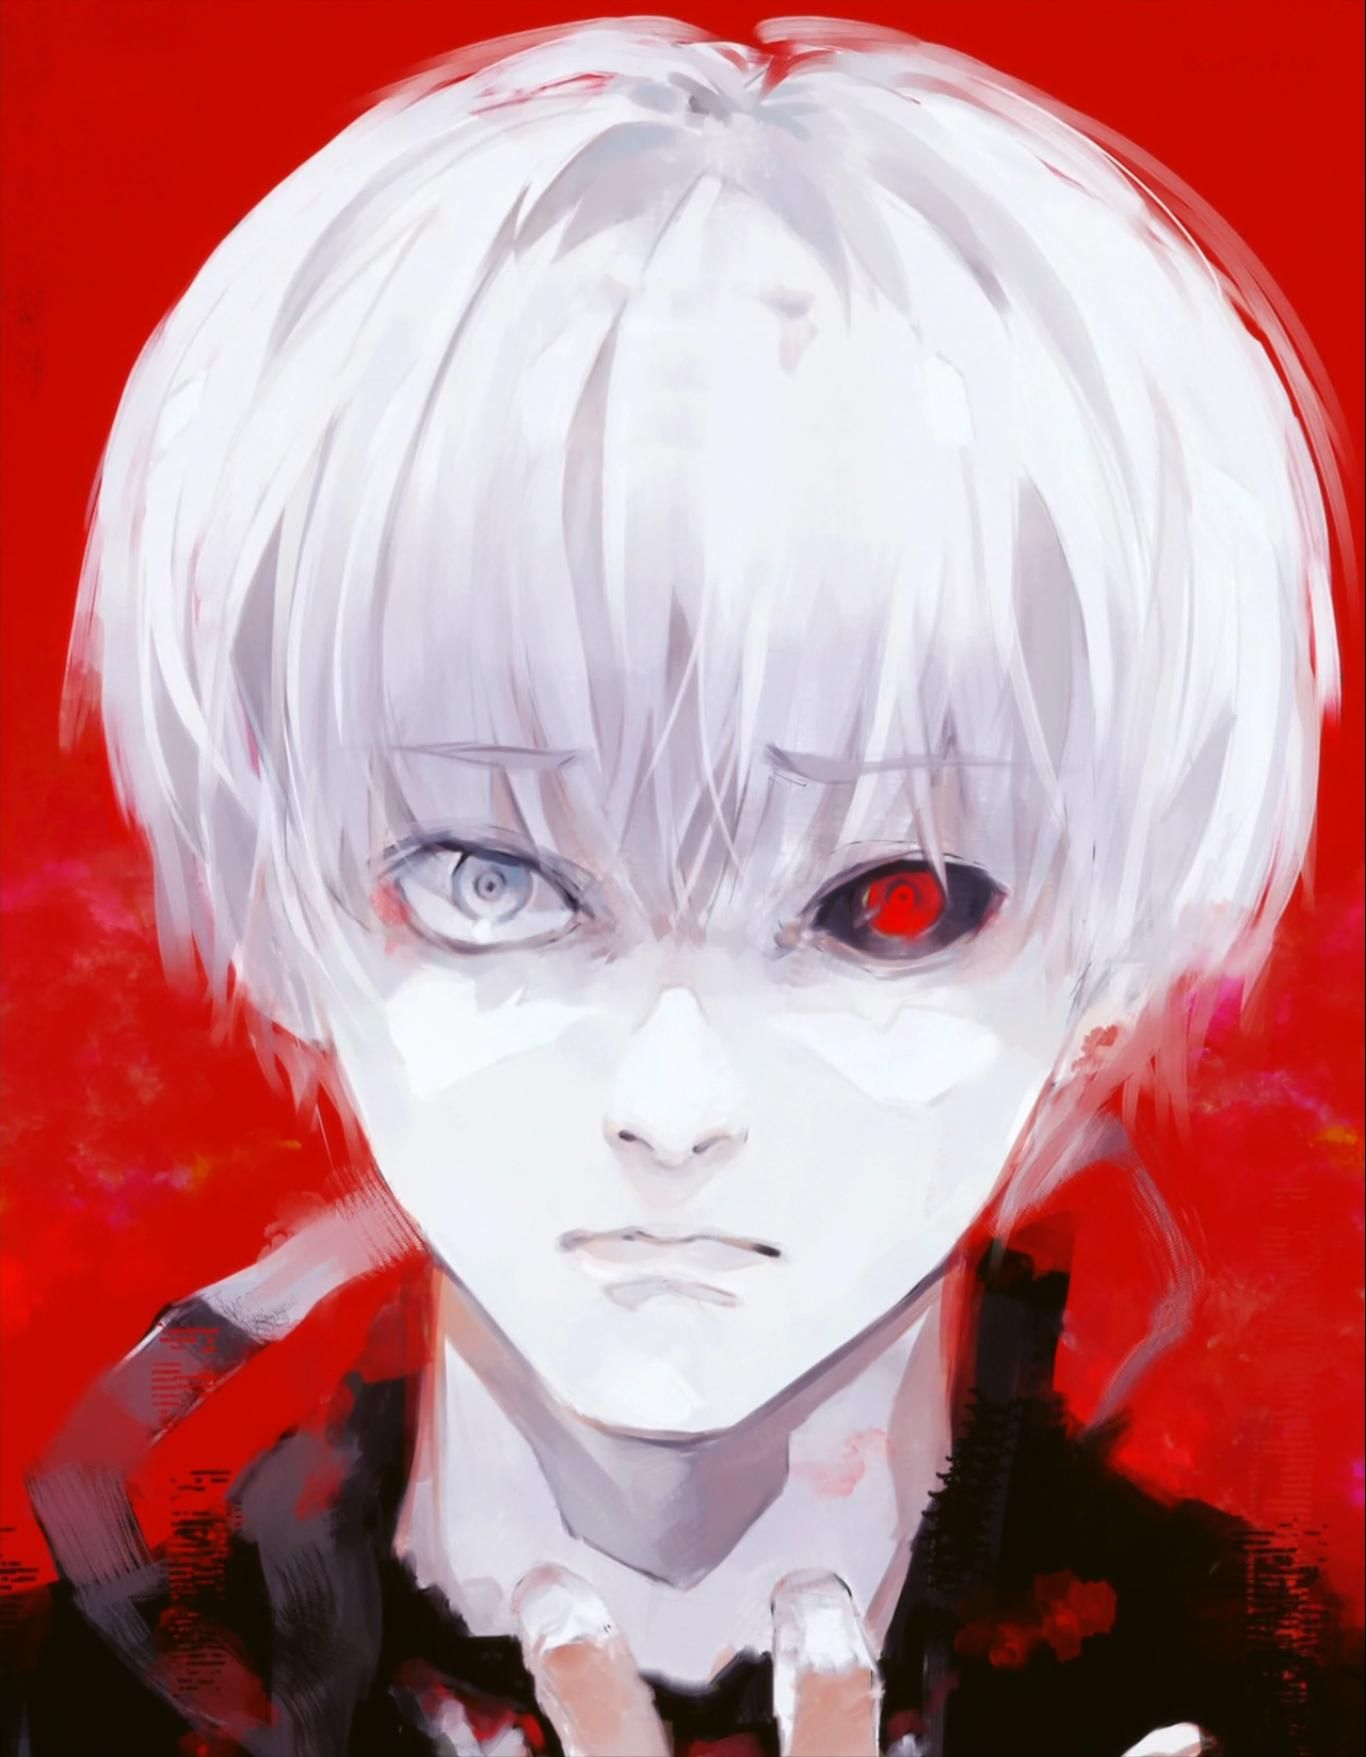 Tokyo Ghoul √A Episode 1 Discussion Tokyo ghoul manga